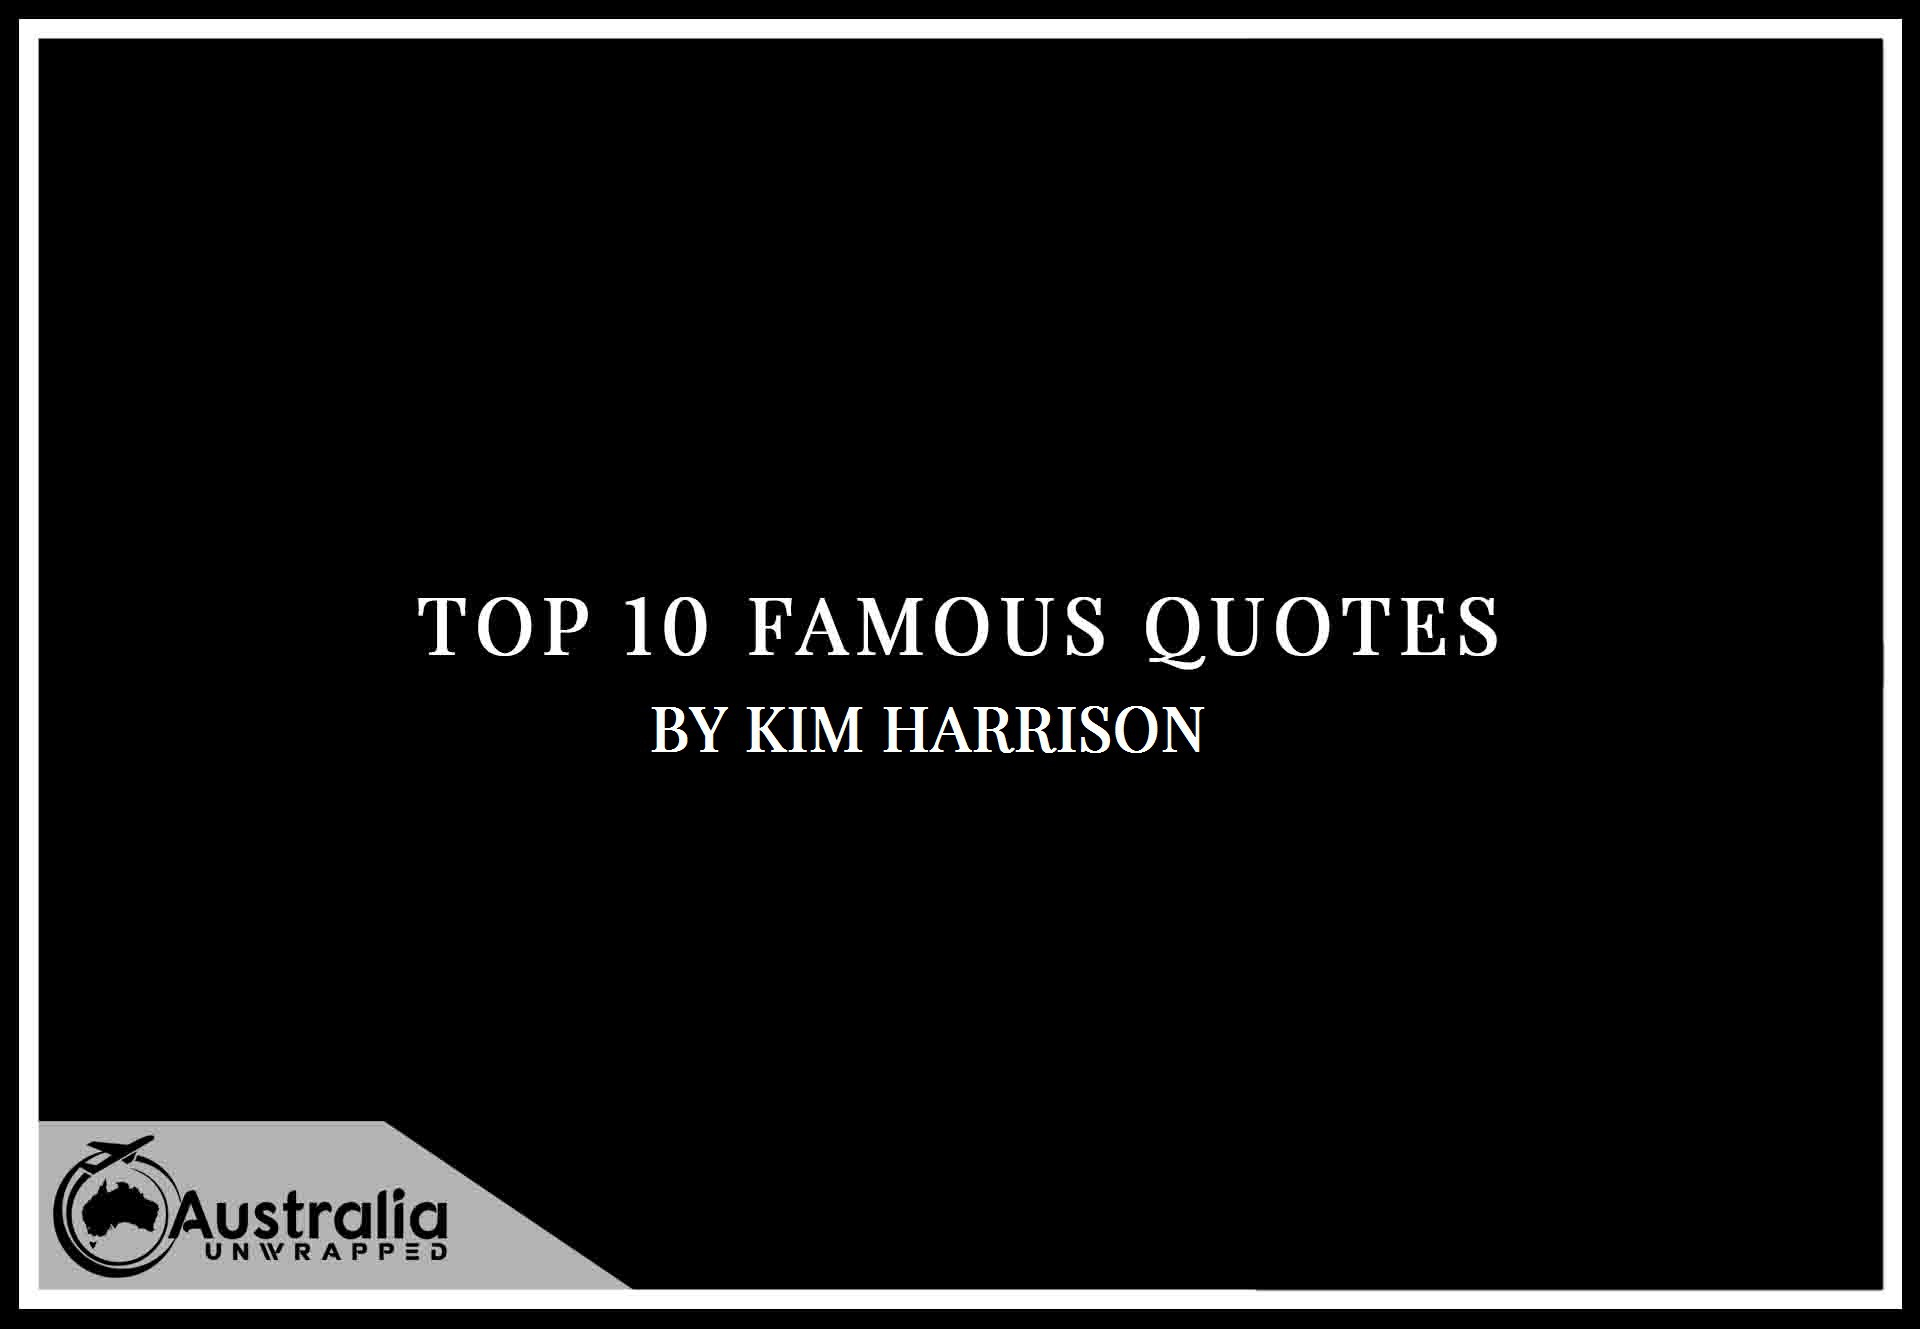 Kim Harrison's Top 10 Popular and Famous Quotes